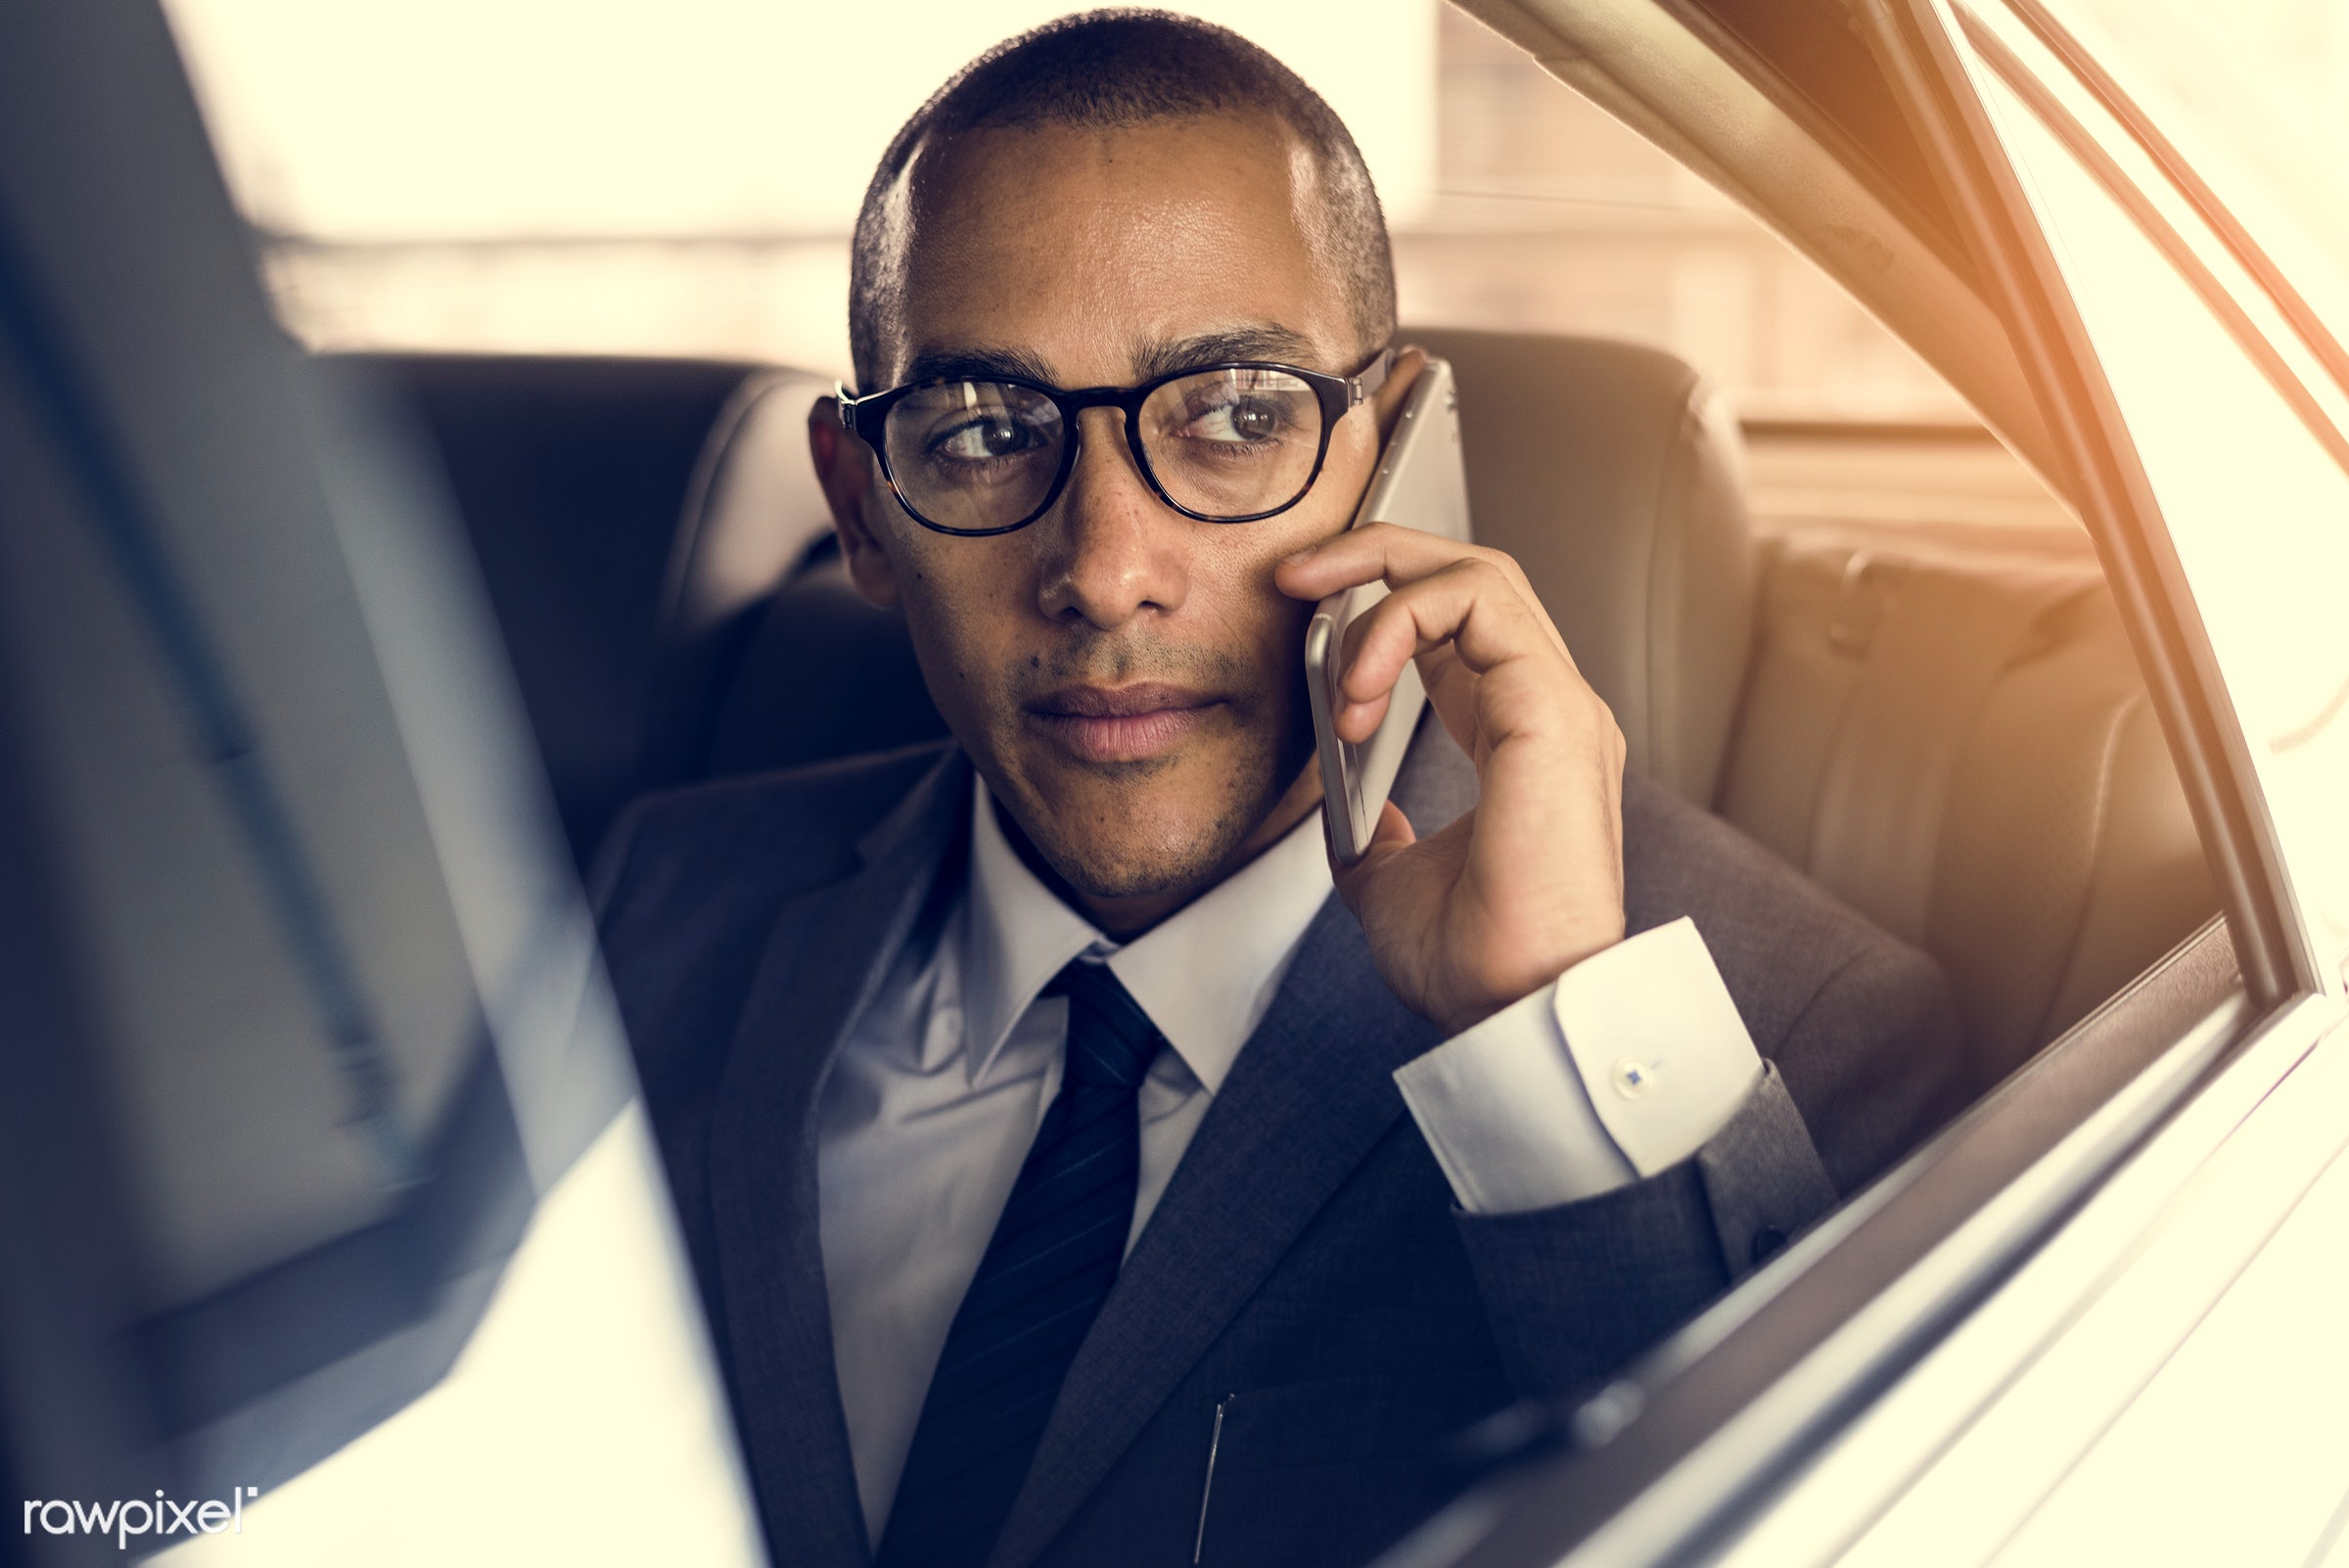 adult, back seat, business, businessman, businessmen, call, candid, car, communication, corporate, device, digital device,...